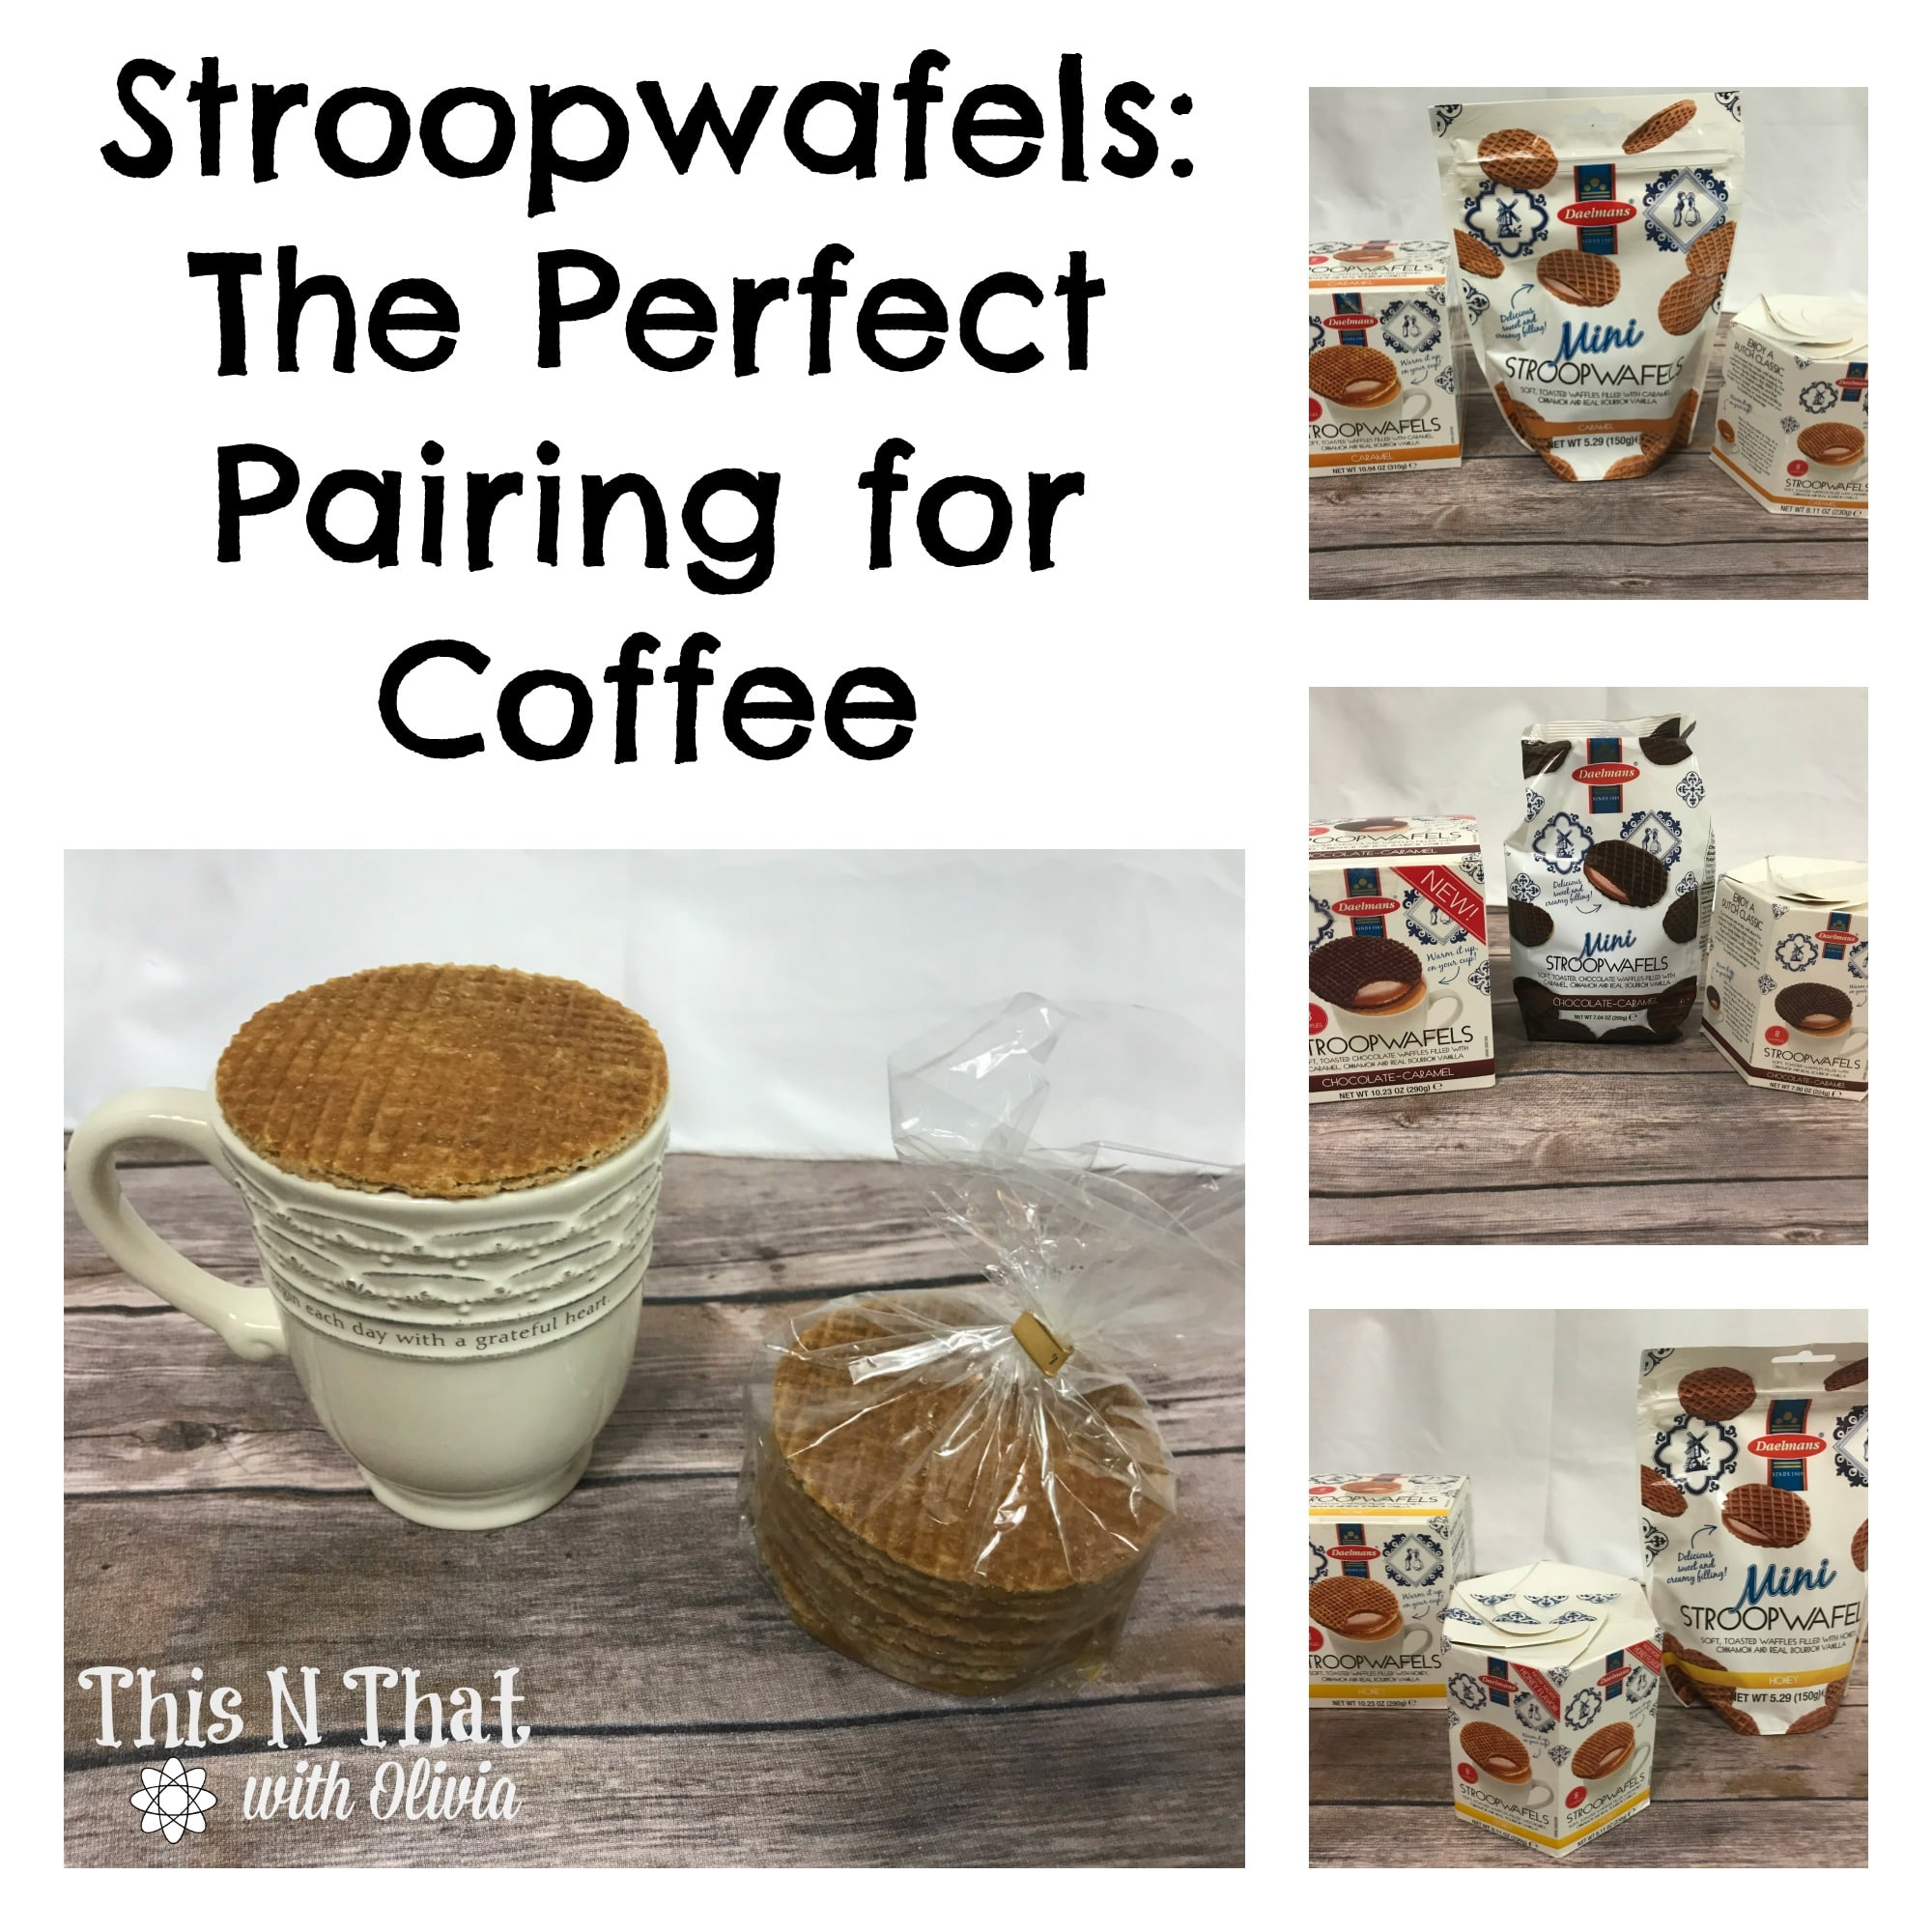 Stroopwafels: The Perfect Pairing for Coffee @DaelmansUS